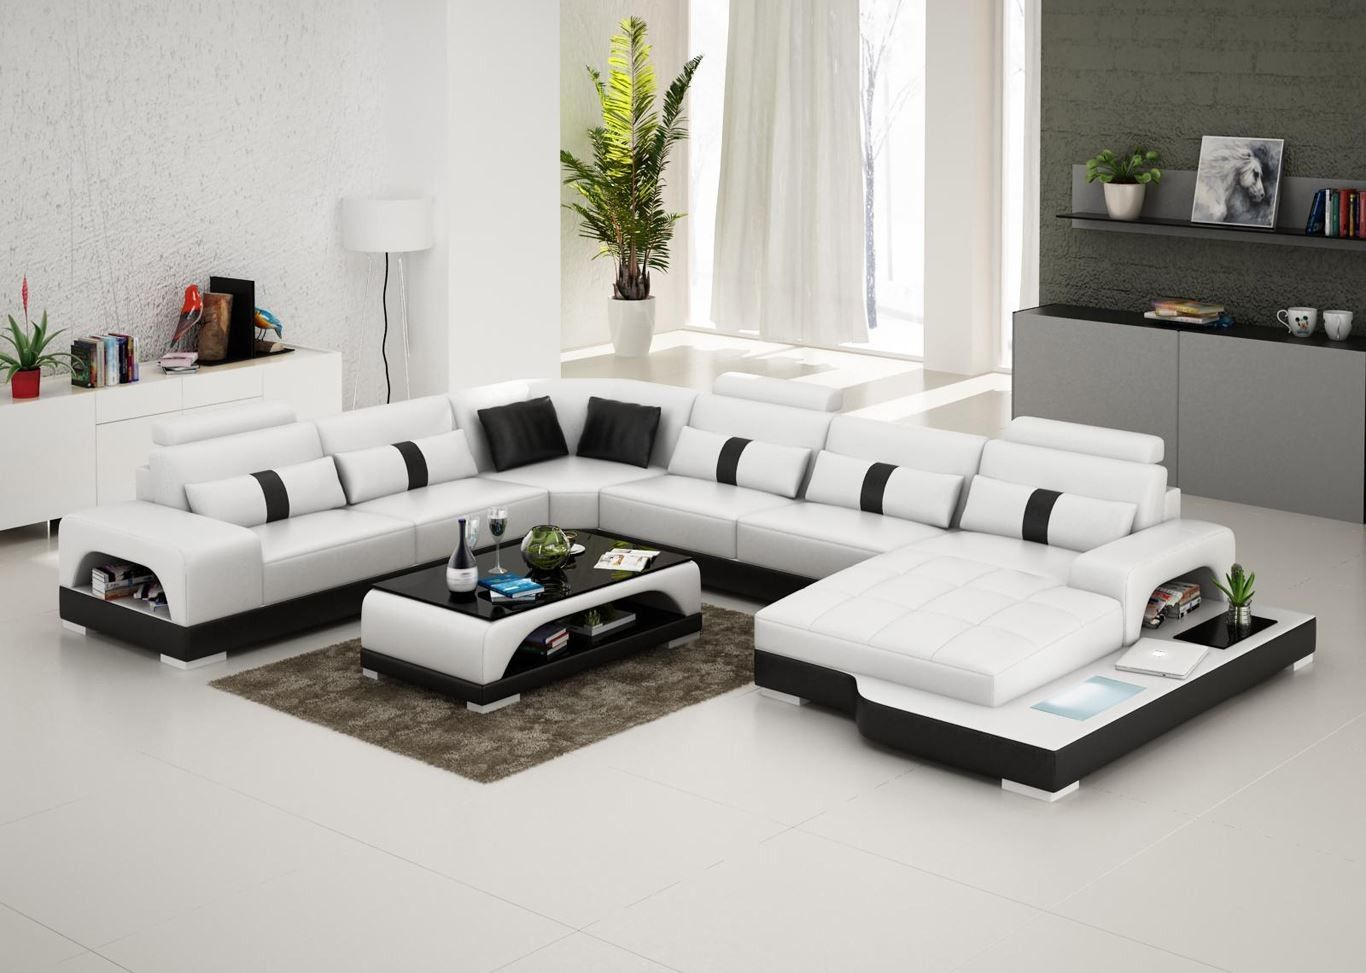 Connie Sectional Sofa   Leather Living Room Furniture   Fancy Furniture    Leather Sectional Sofa   From Opulent Items